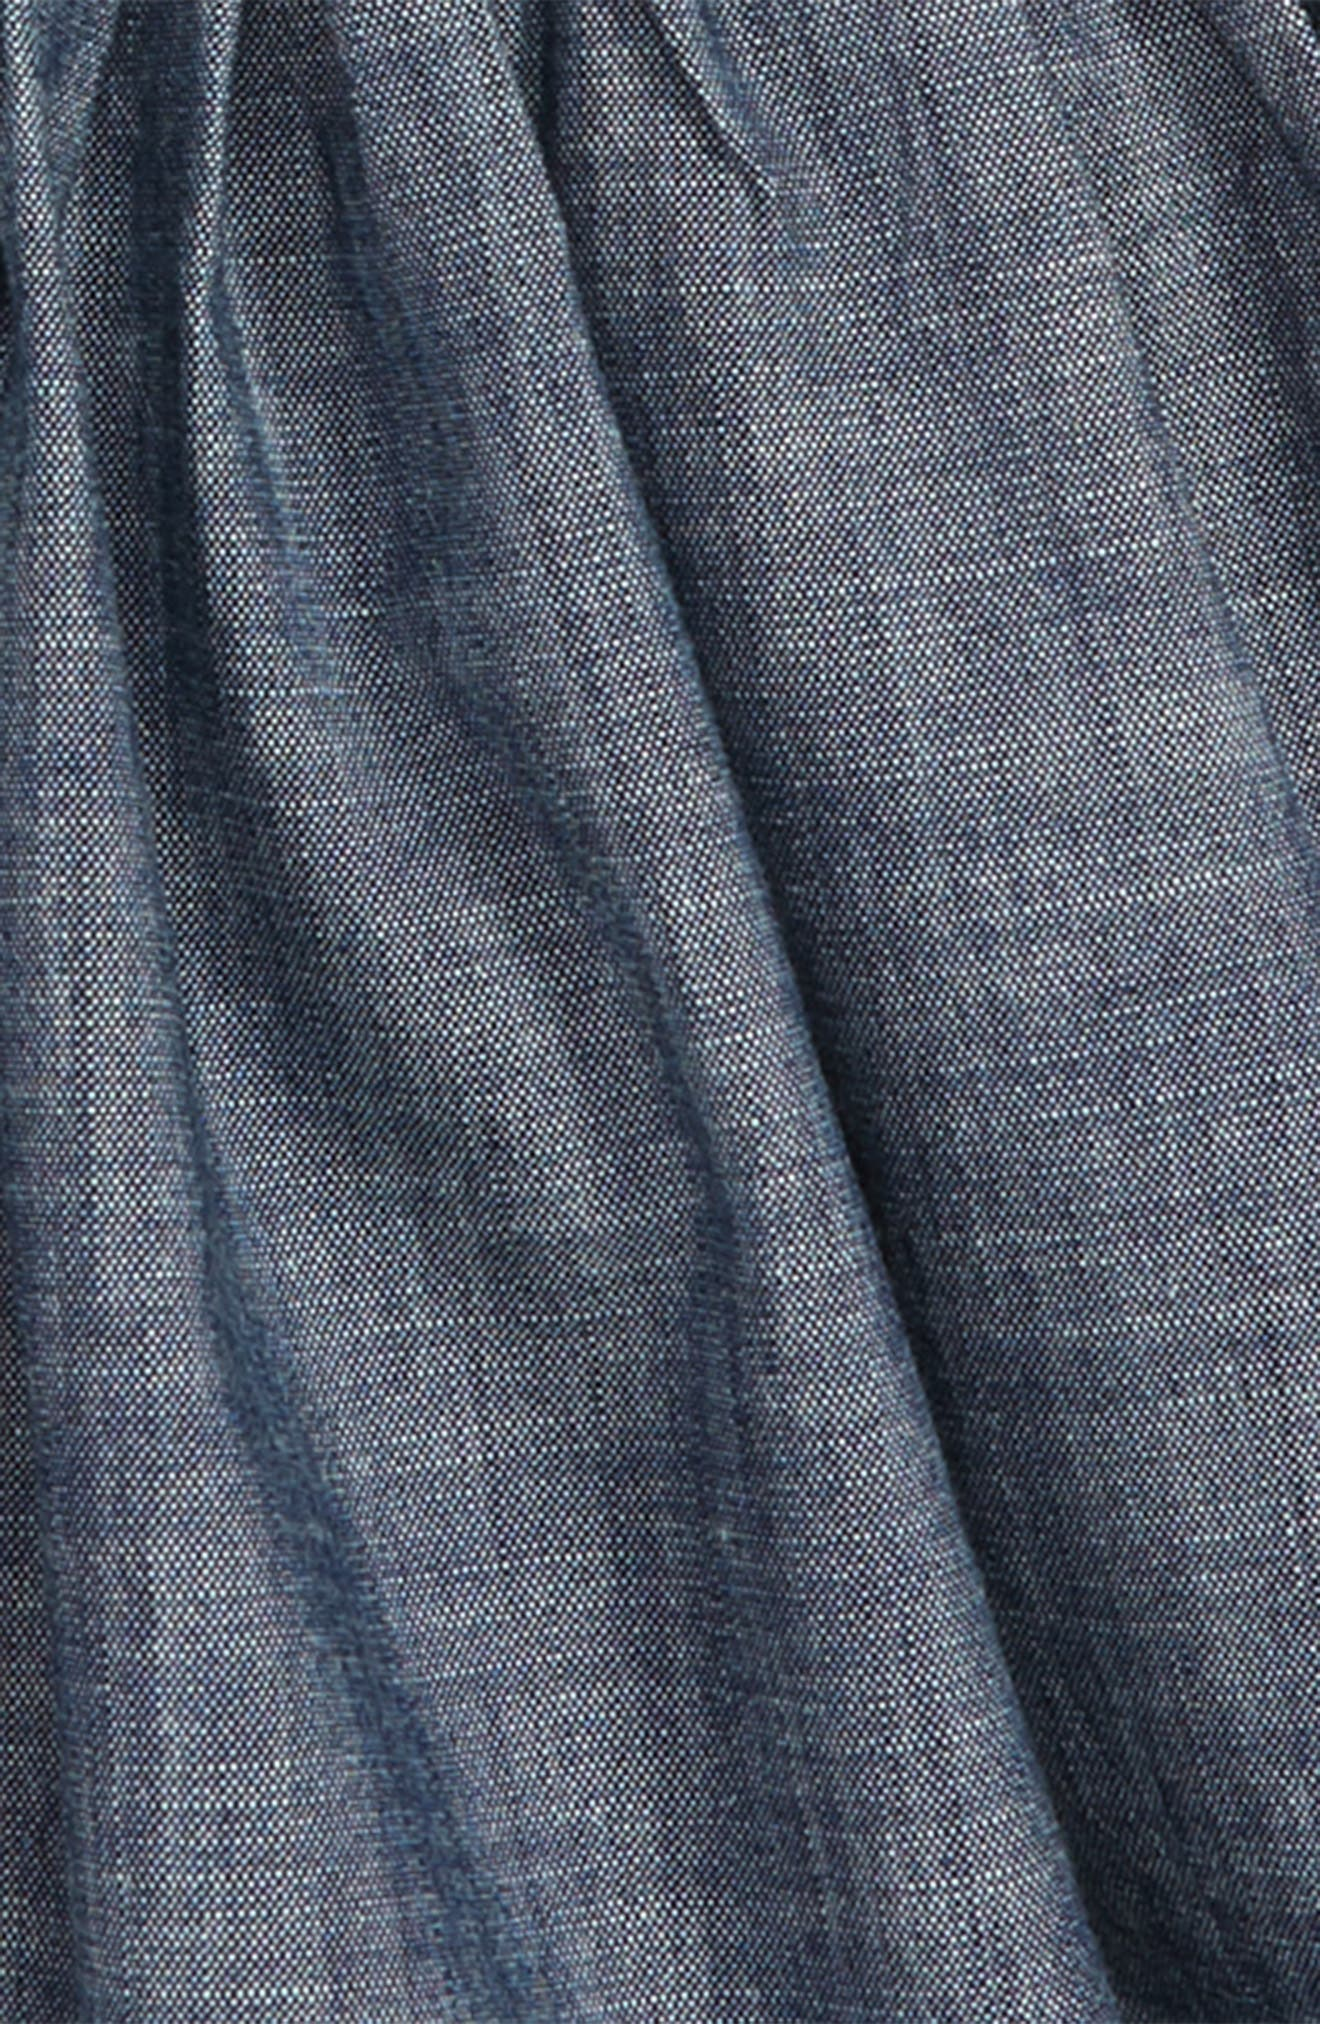 Chambray Button Front Skirt,                             Alternate thumbnail 2, color,                             400